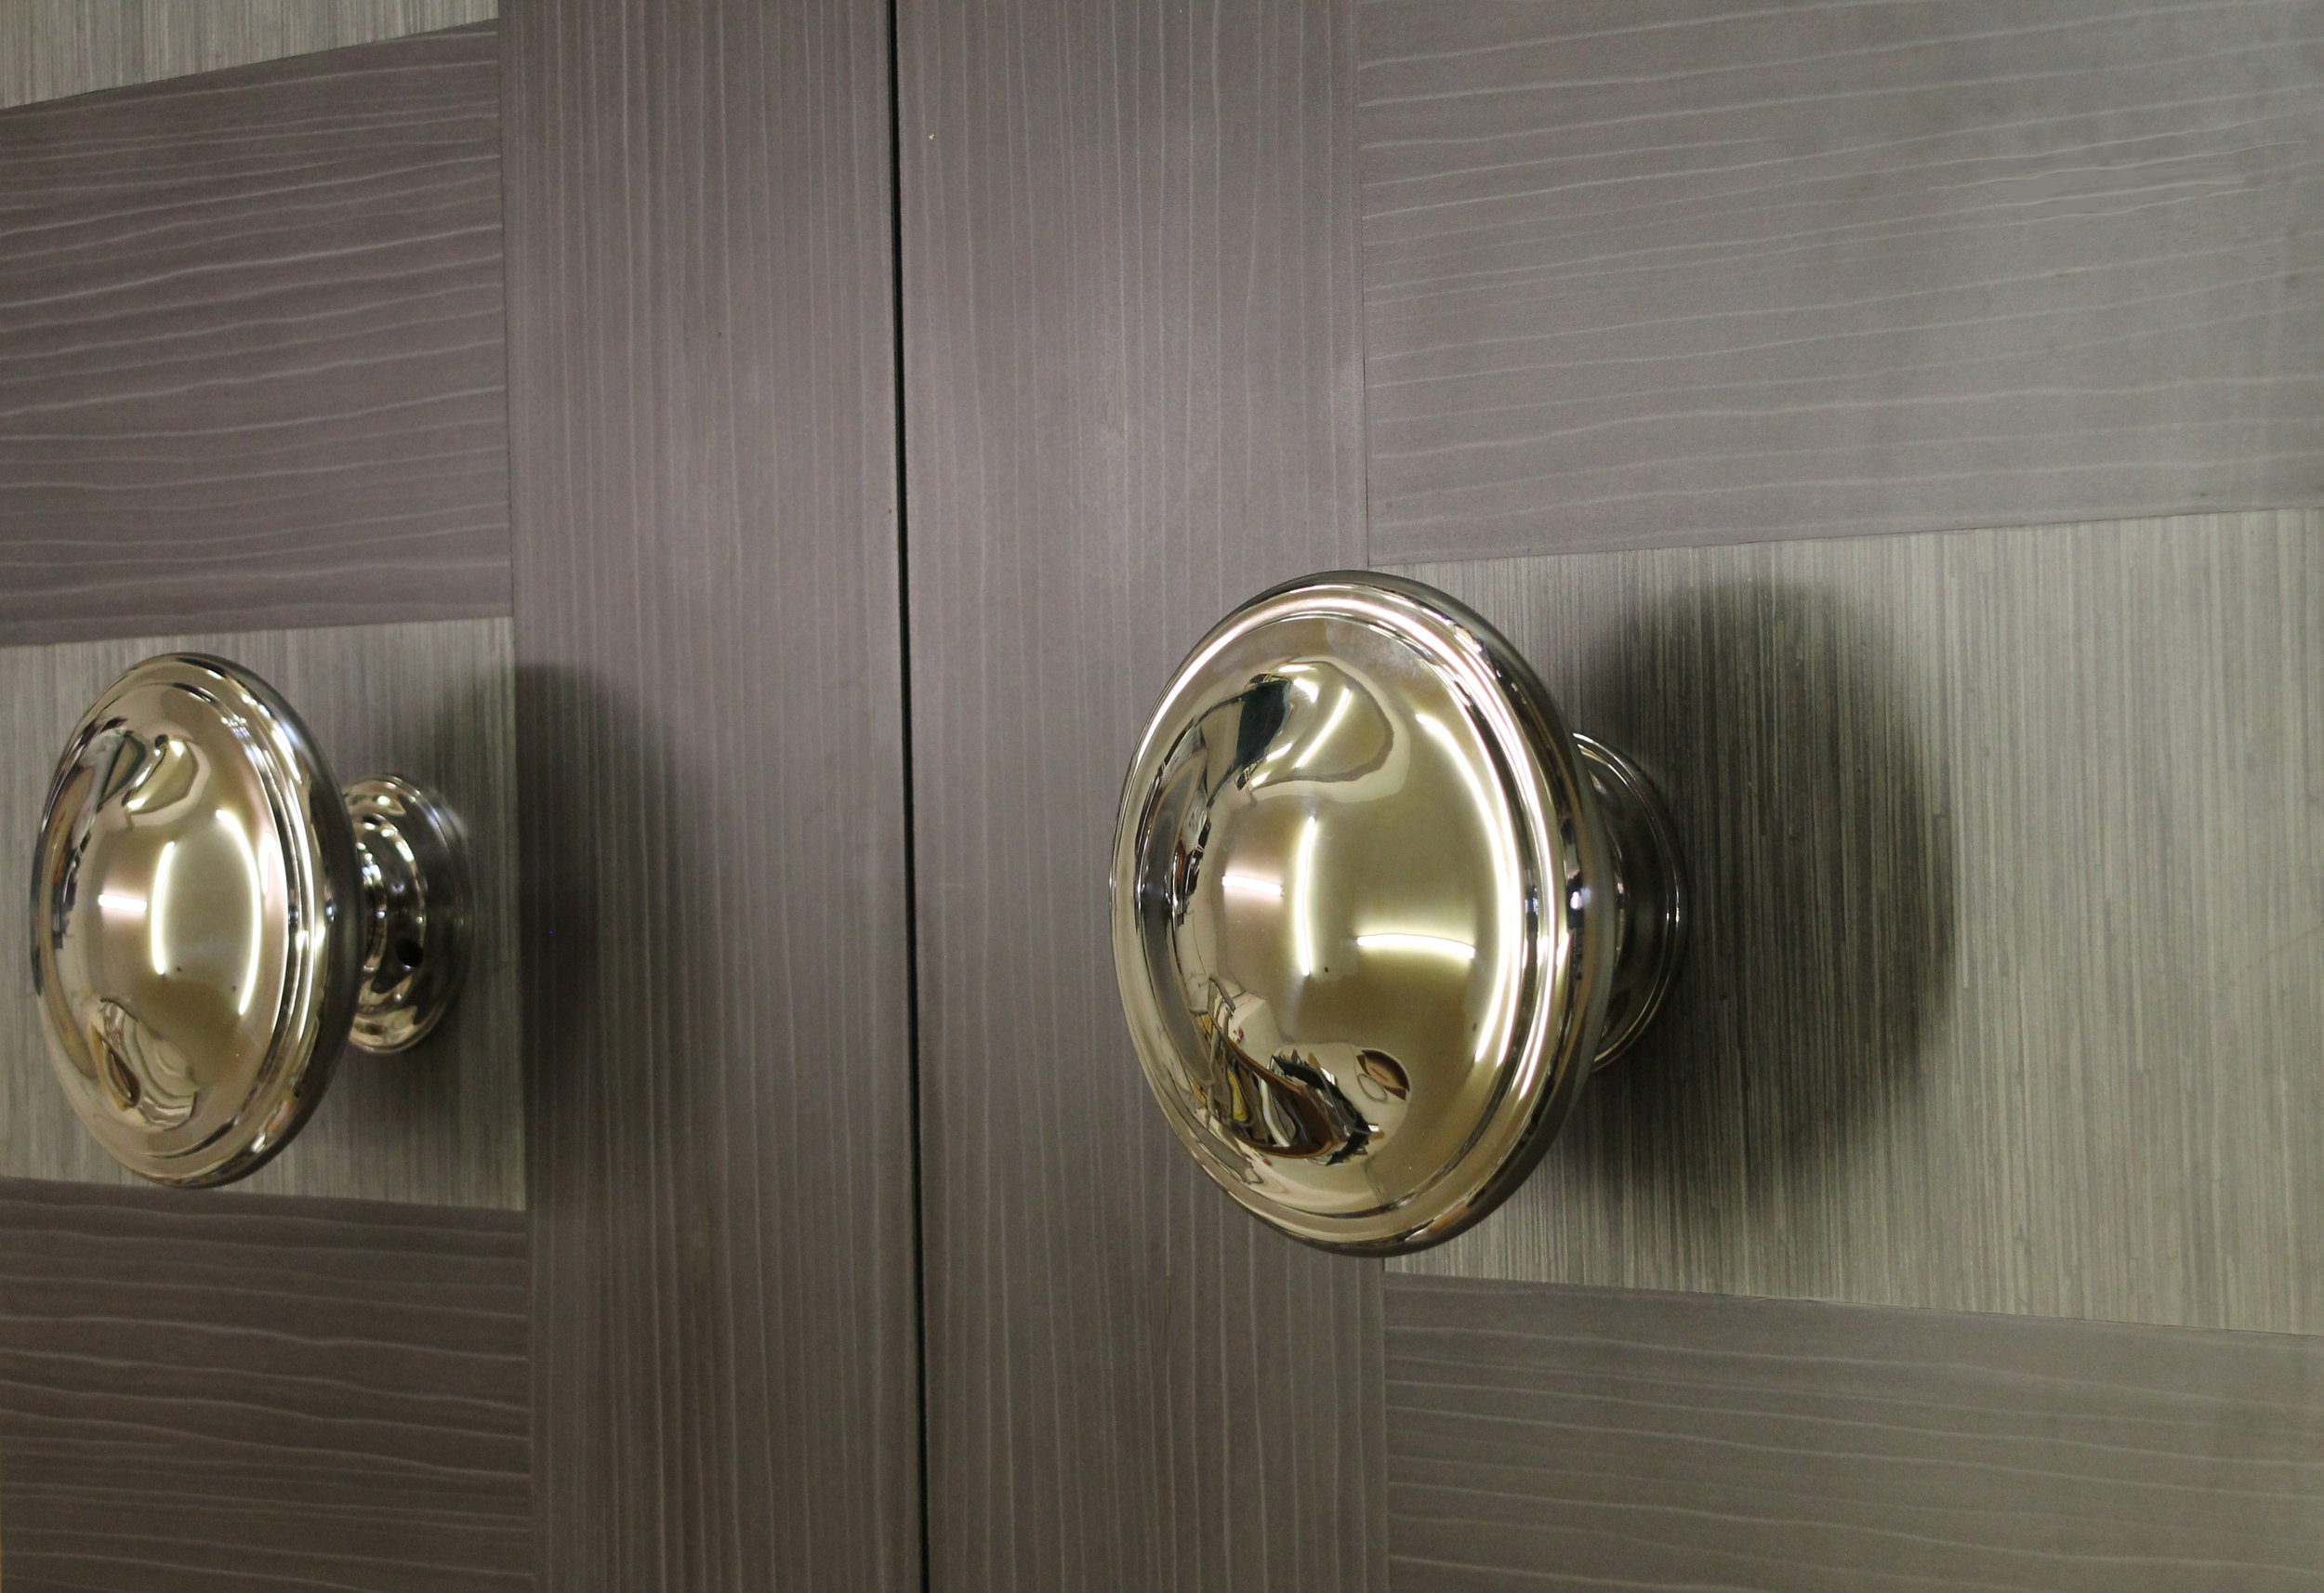 Big Knob on door 2.jpg